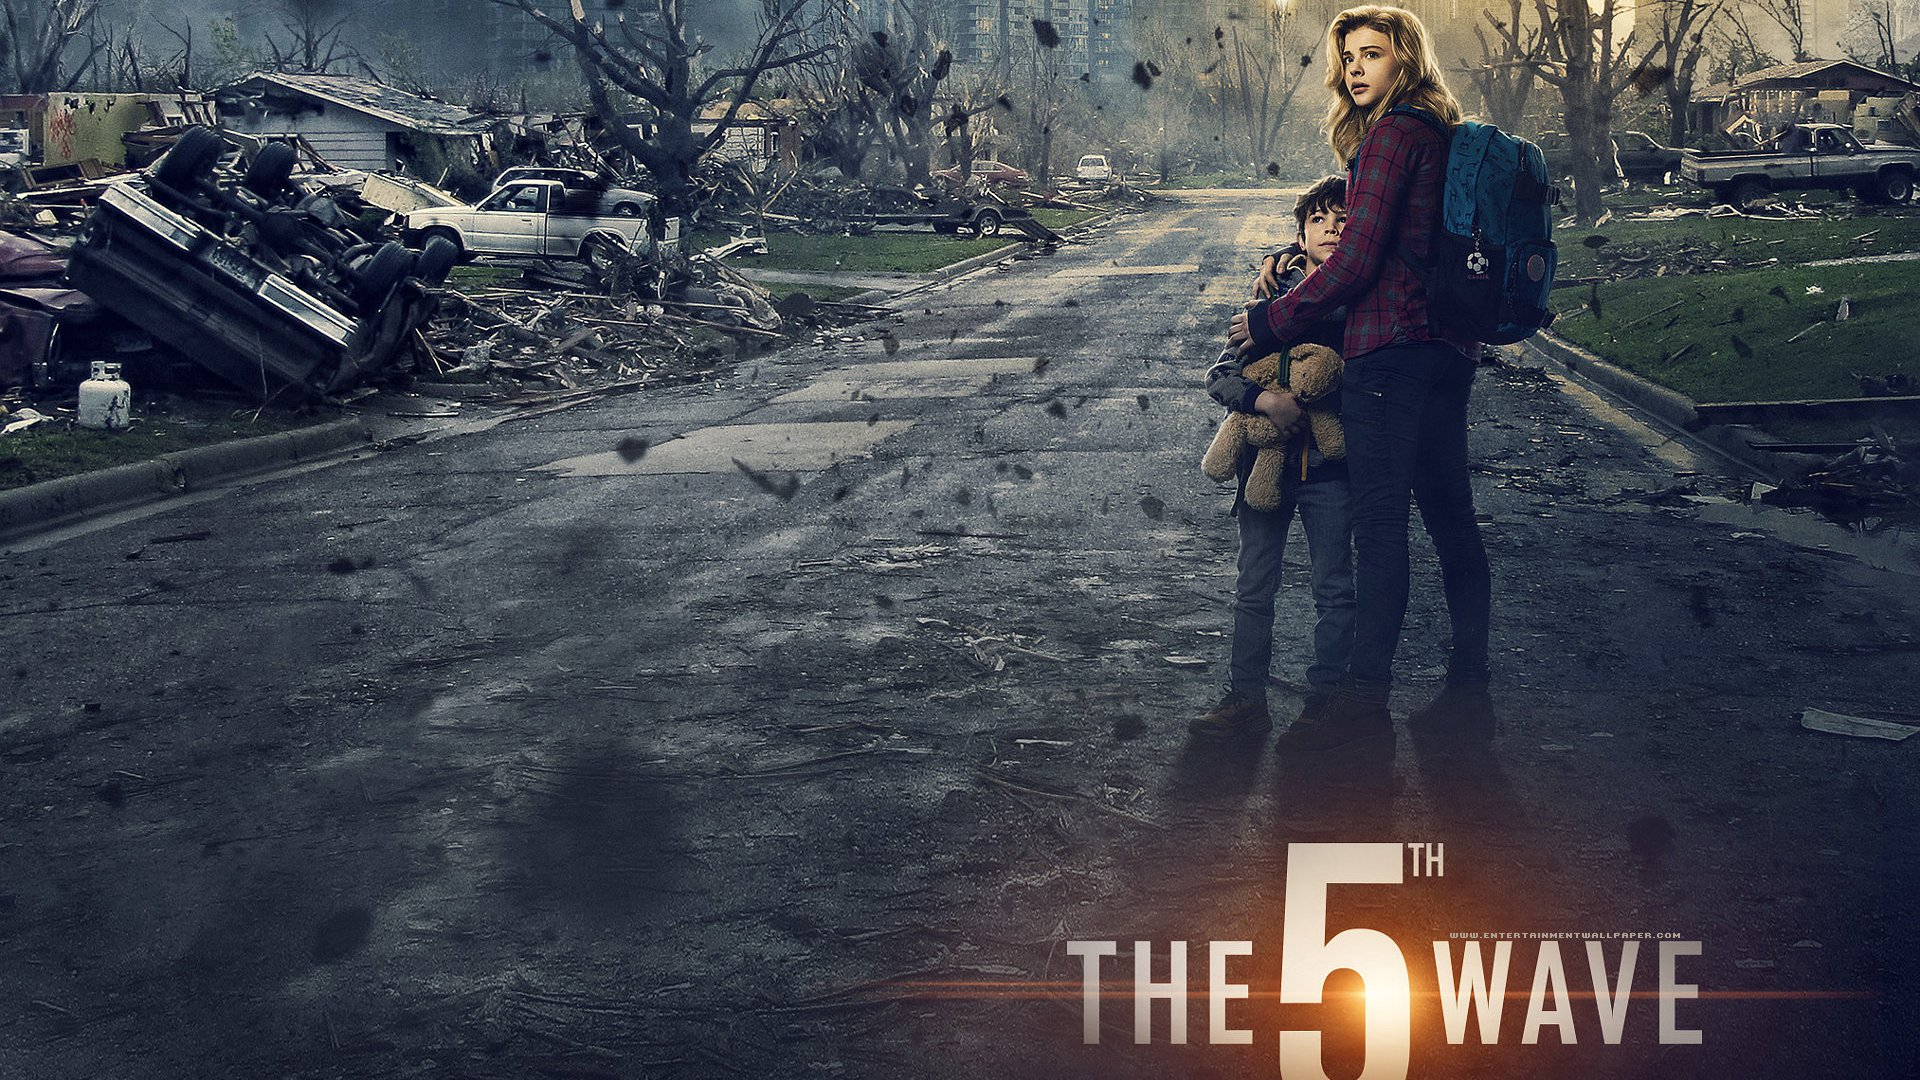 Download the 5th wave audiobook free mp3 streaming online.